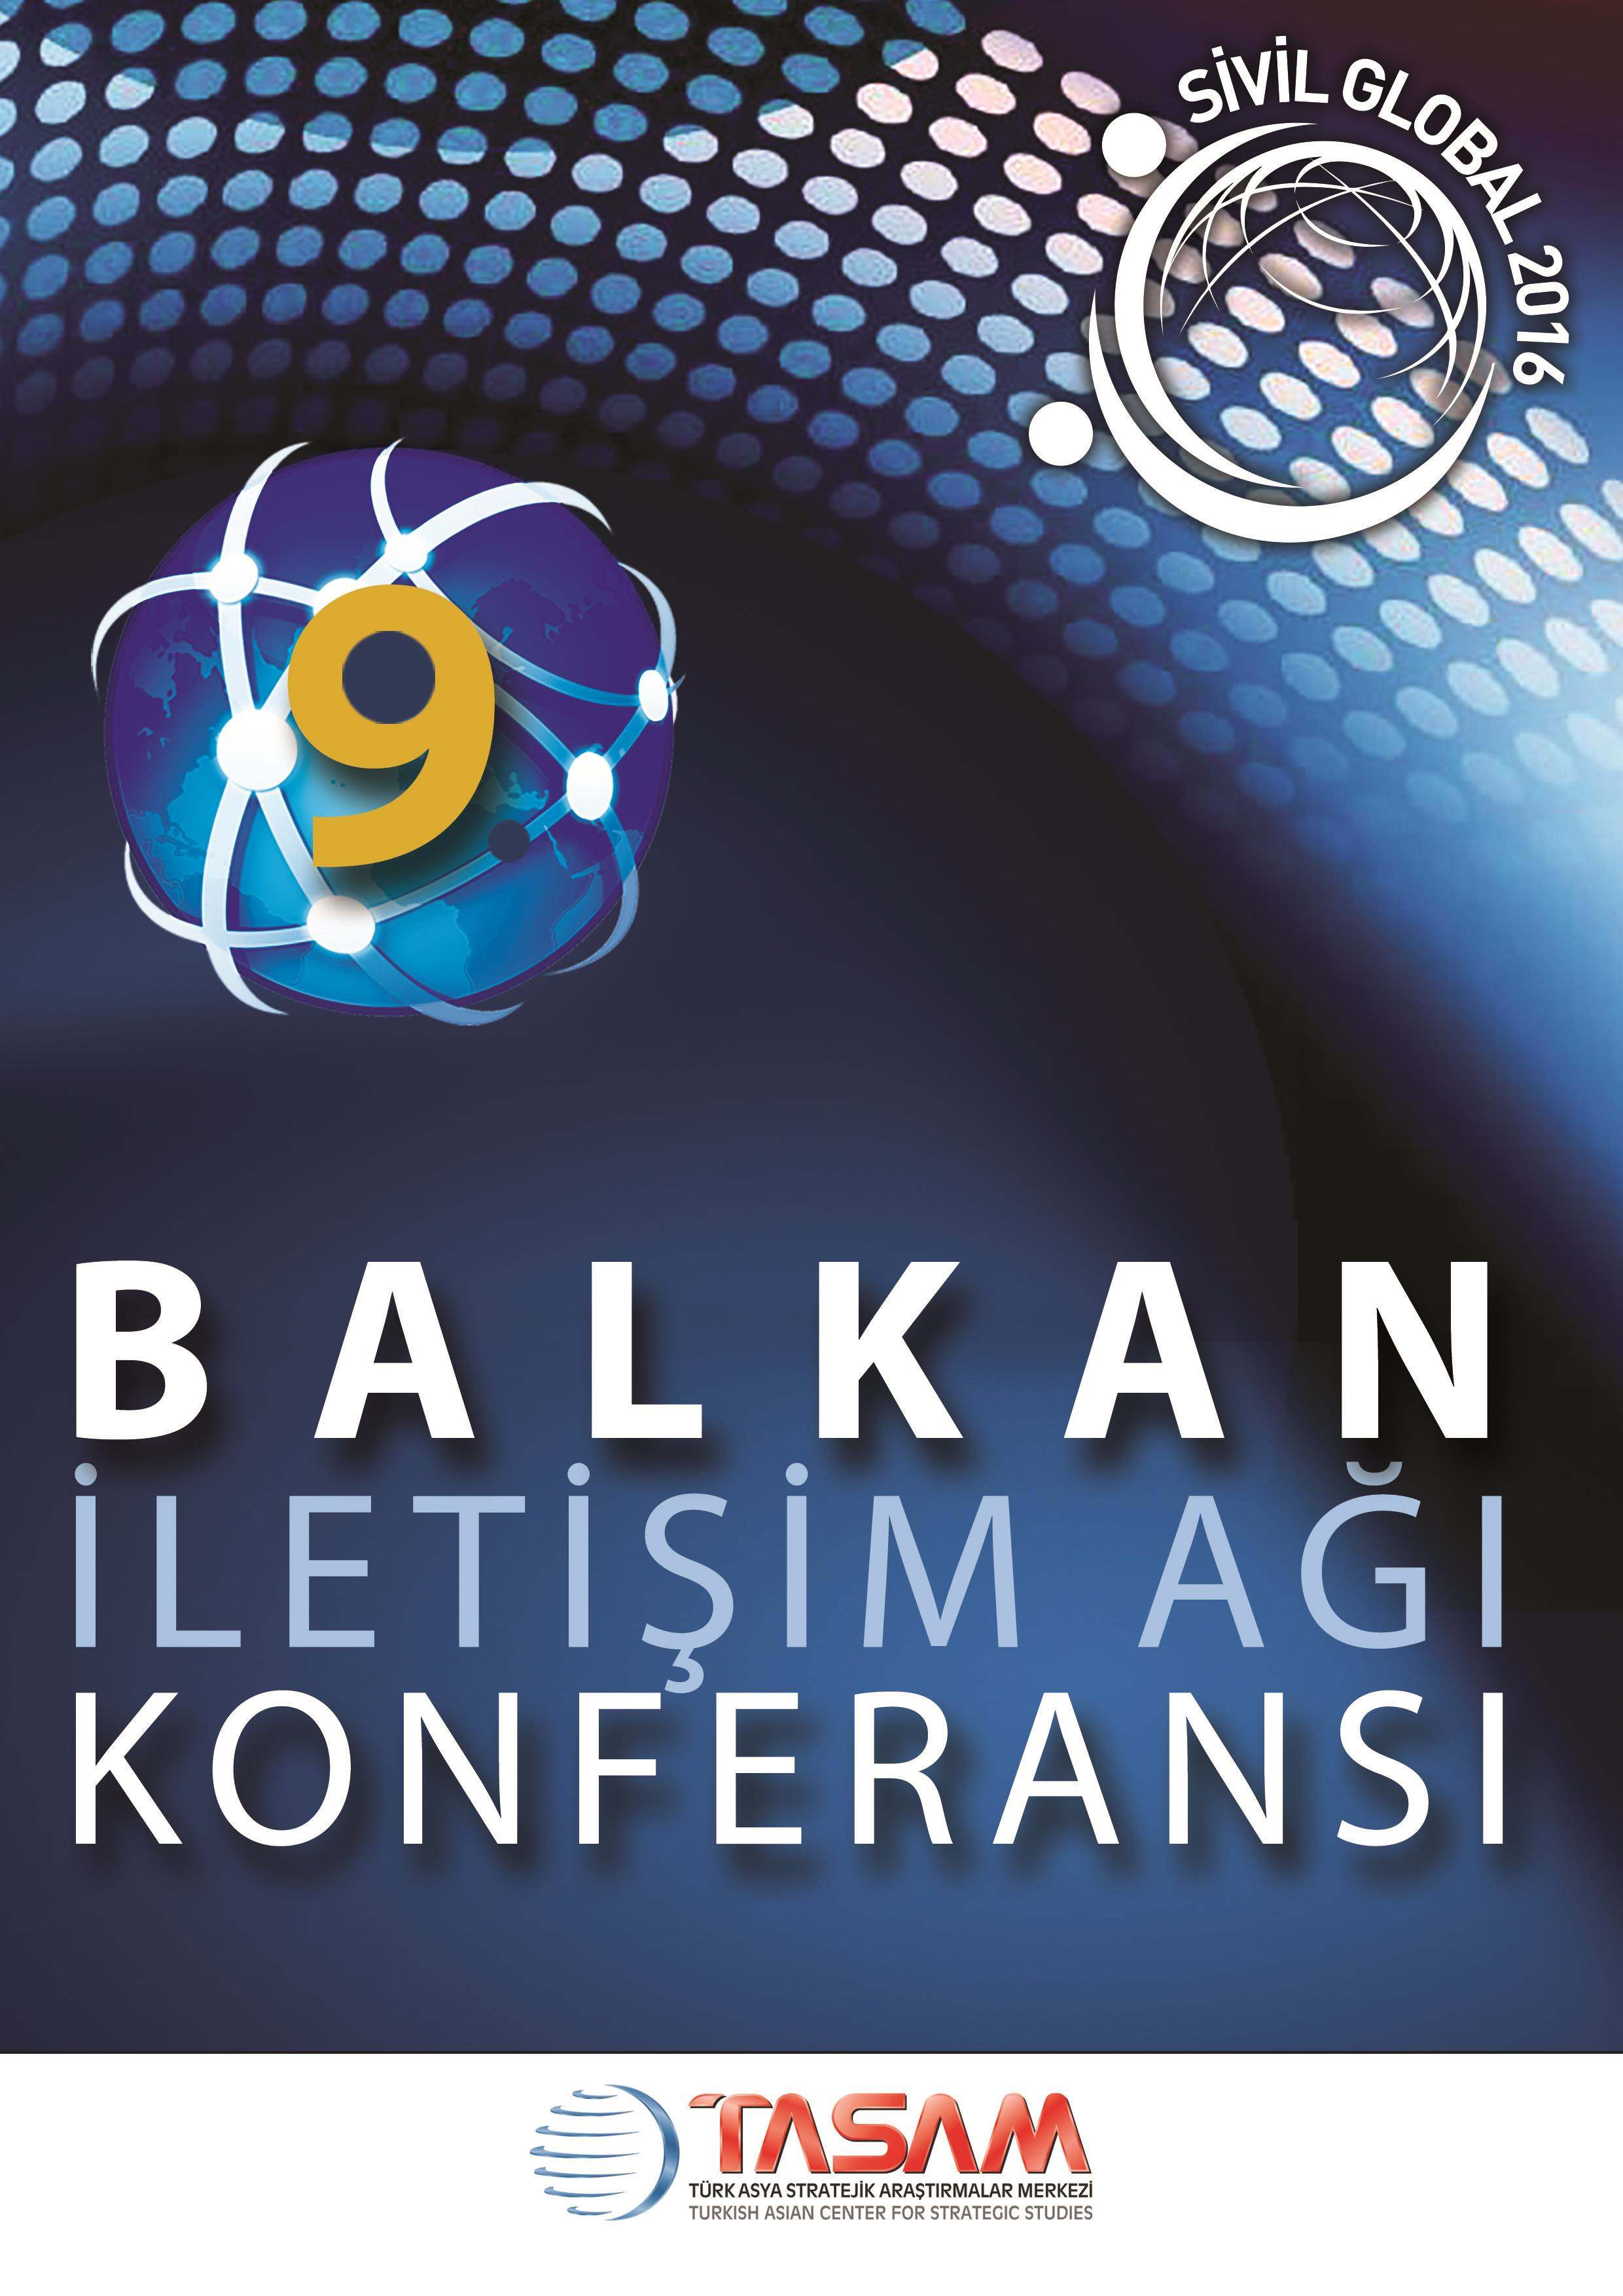 9th Balkan Communication Network Conference